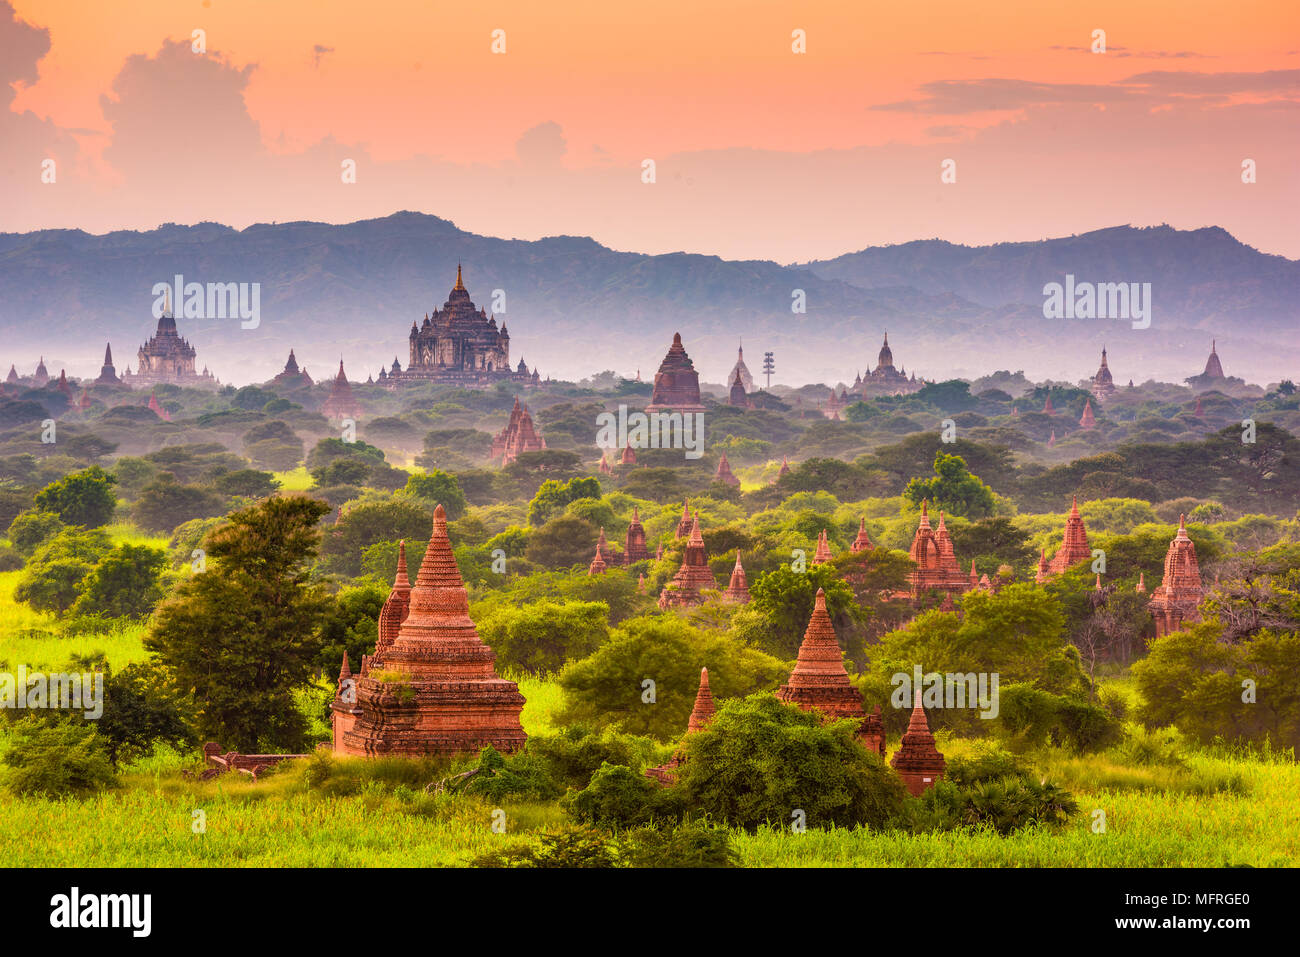 Bagan, Myanmar ancient temple ruins landscape in the archaeological zone at dusk. Stock Photo